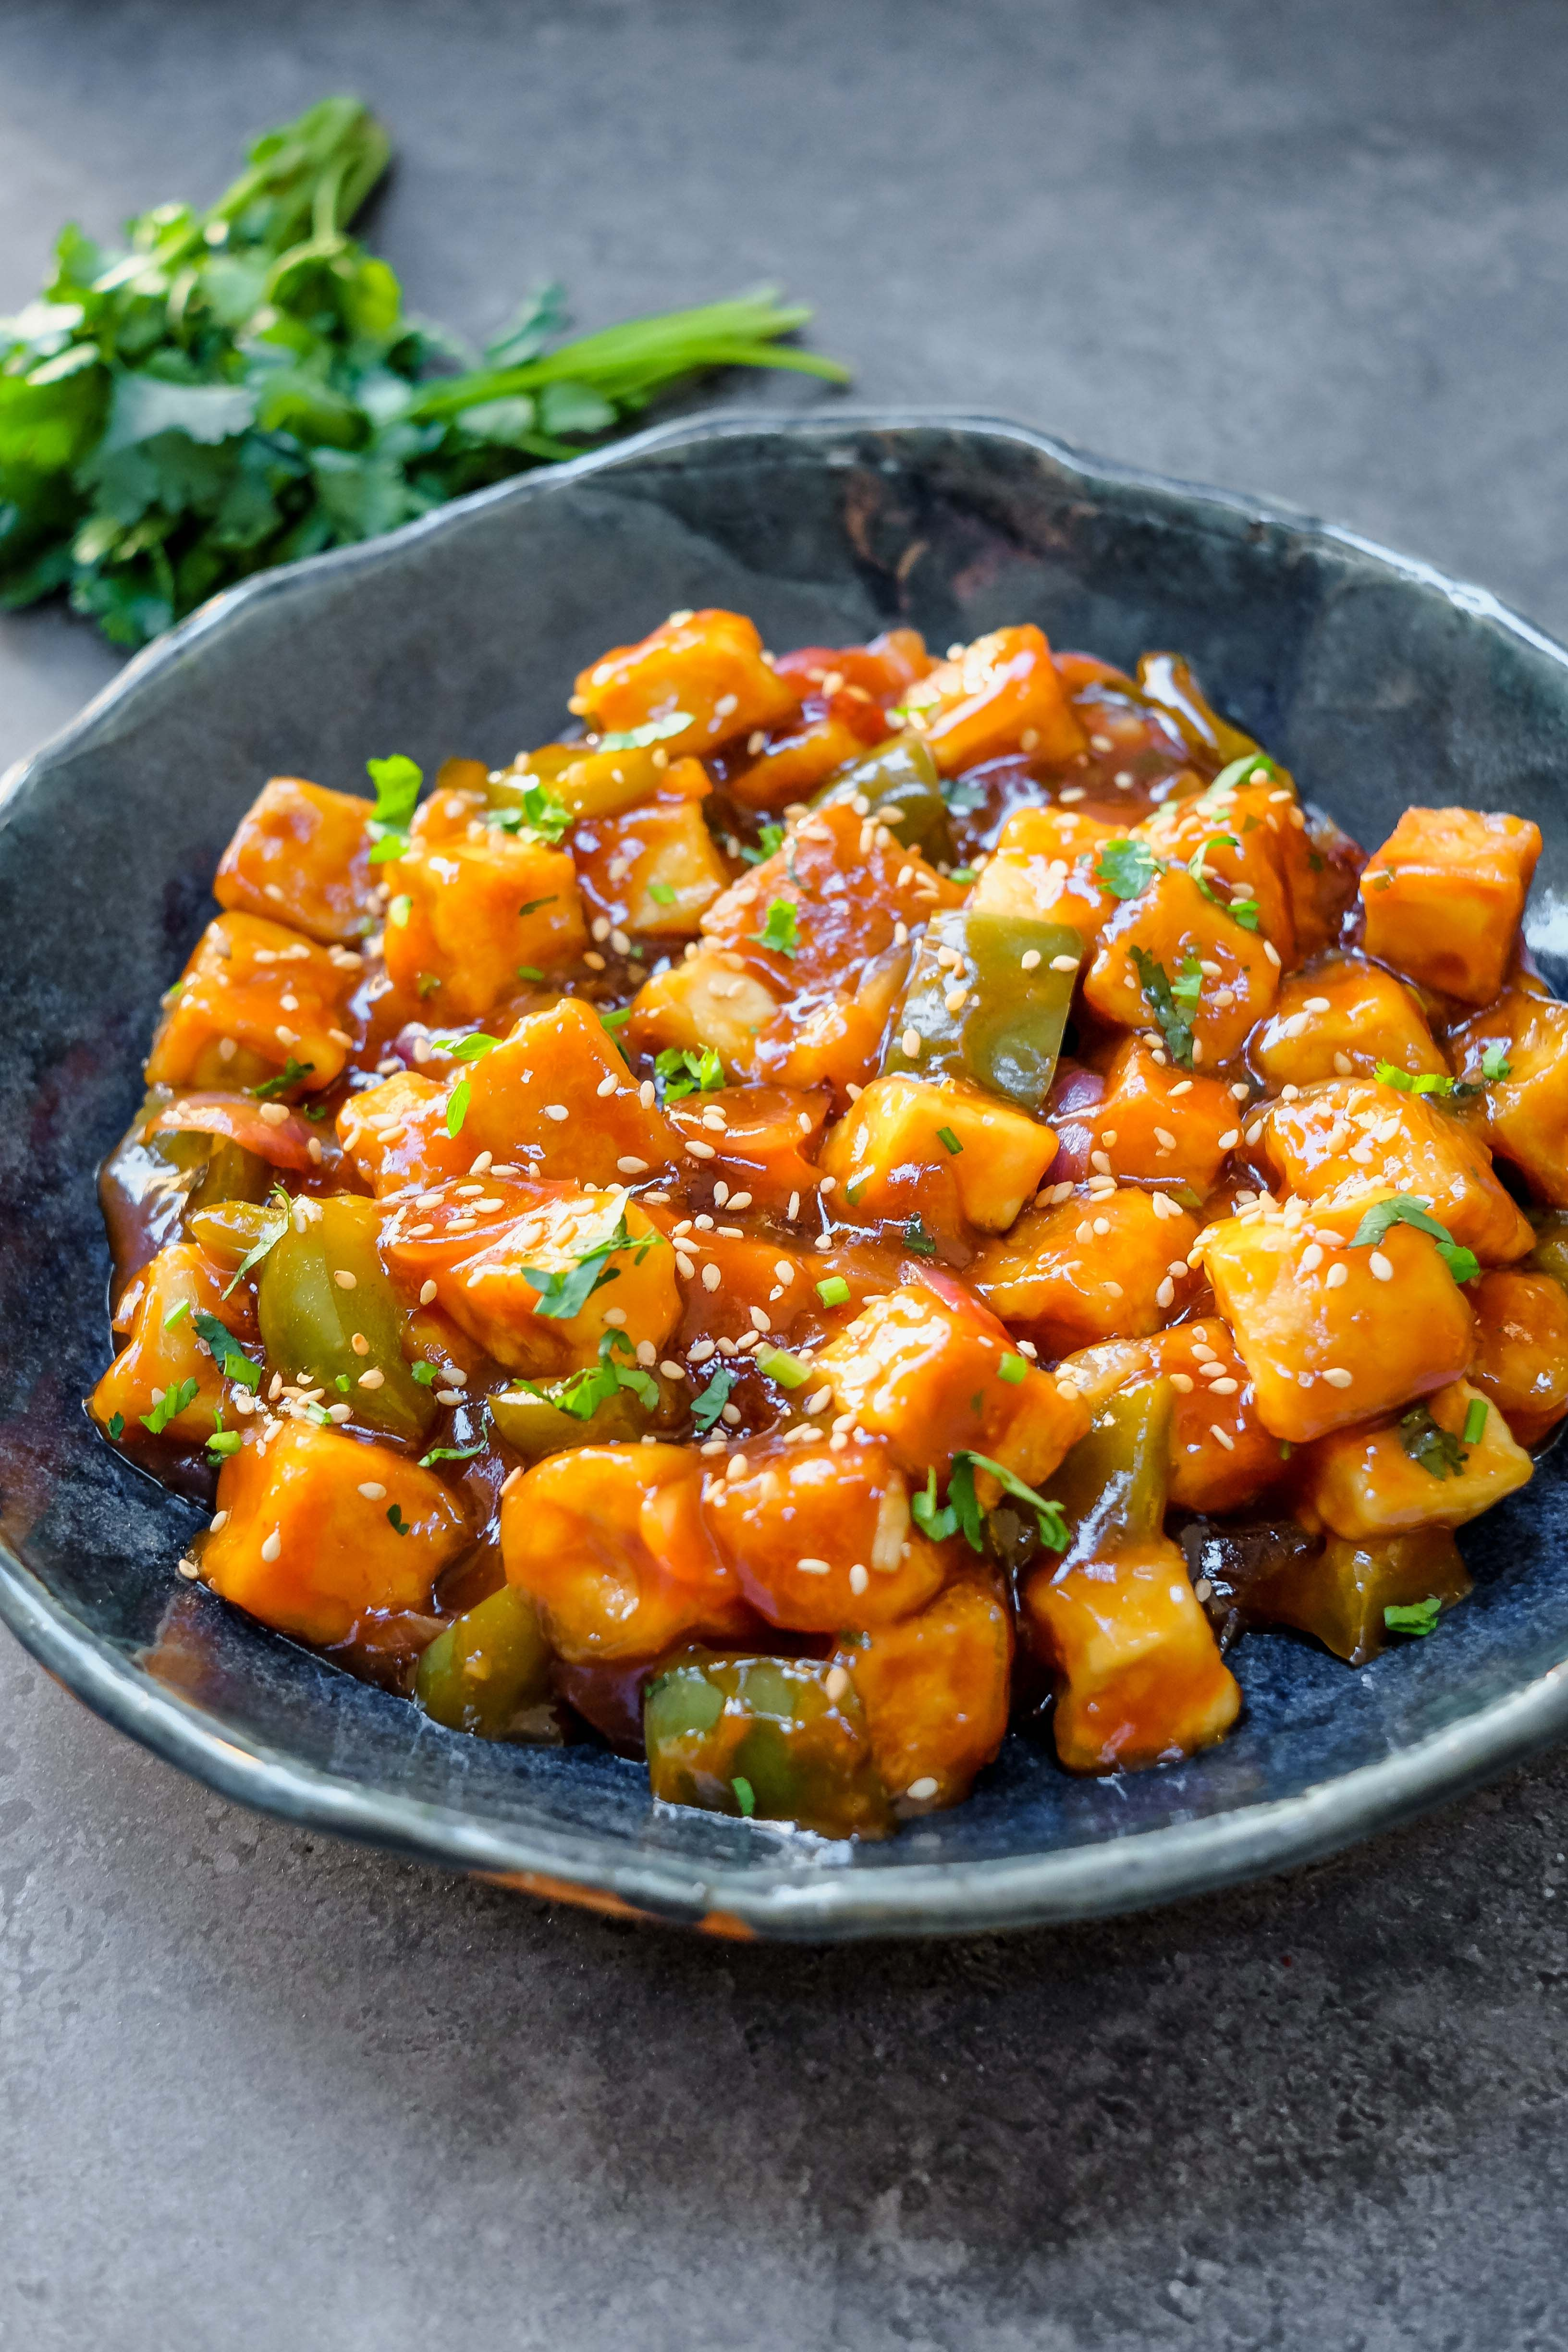 This vegan sweet and sour tofu recipe reminds me of the